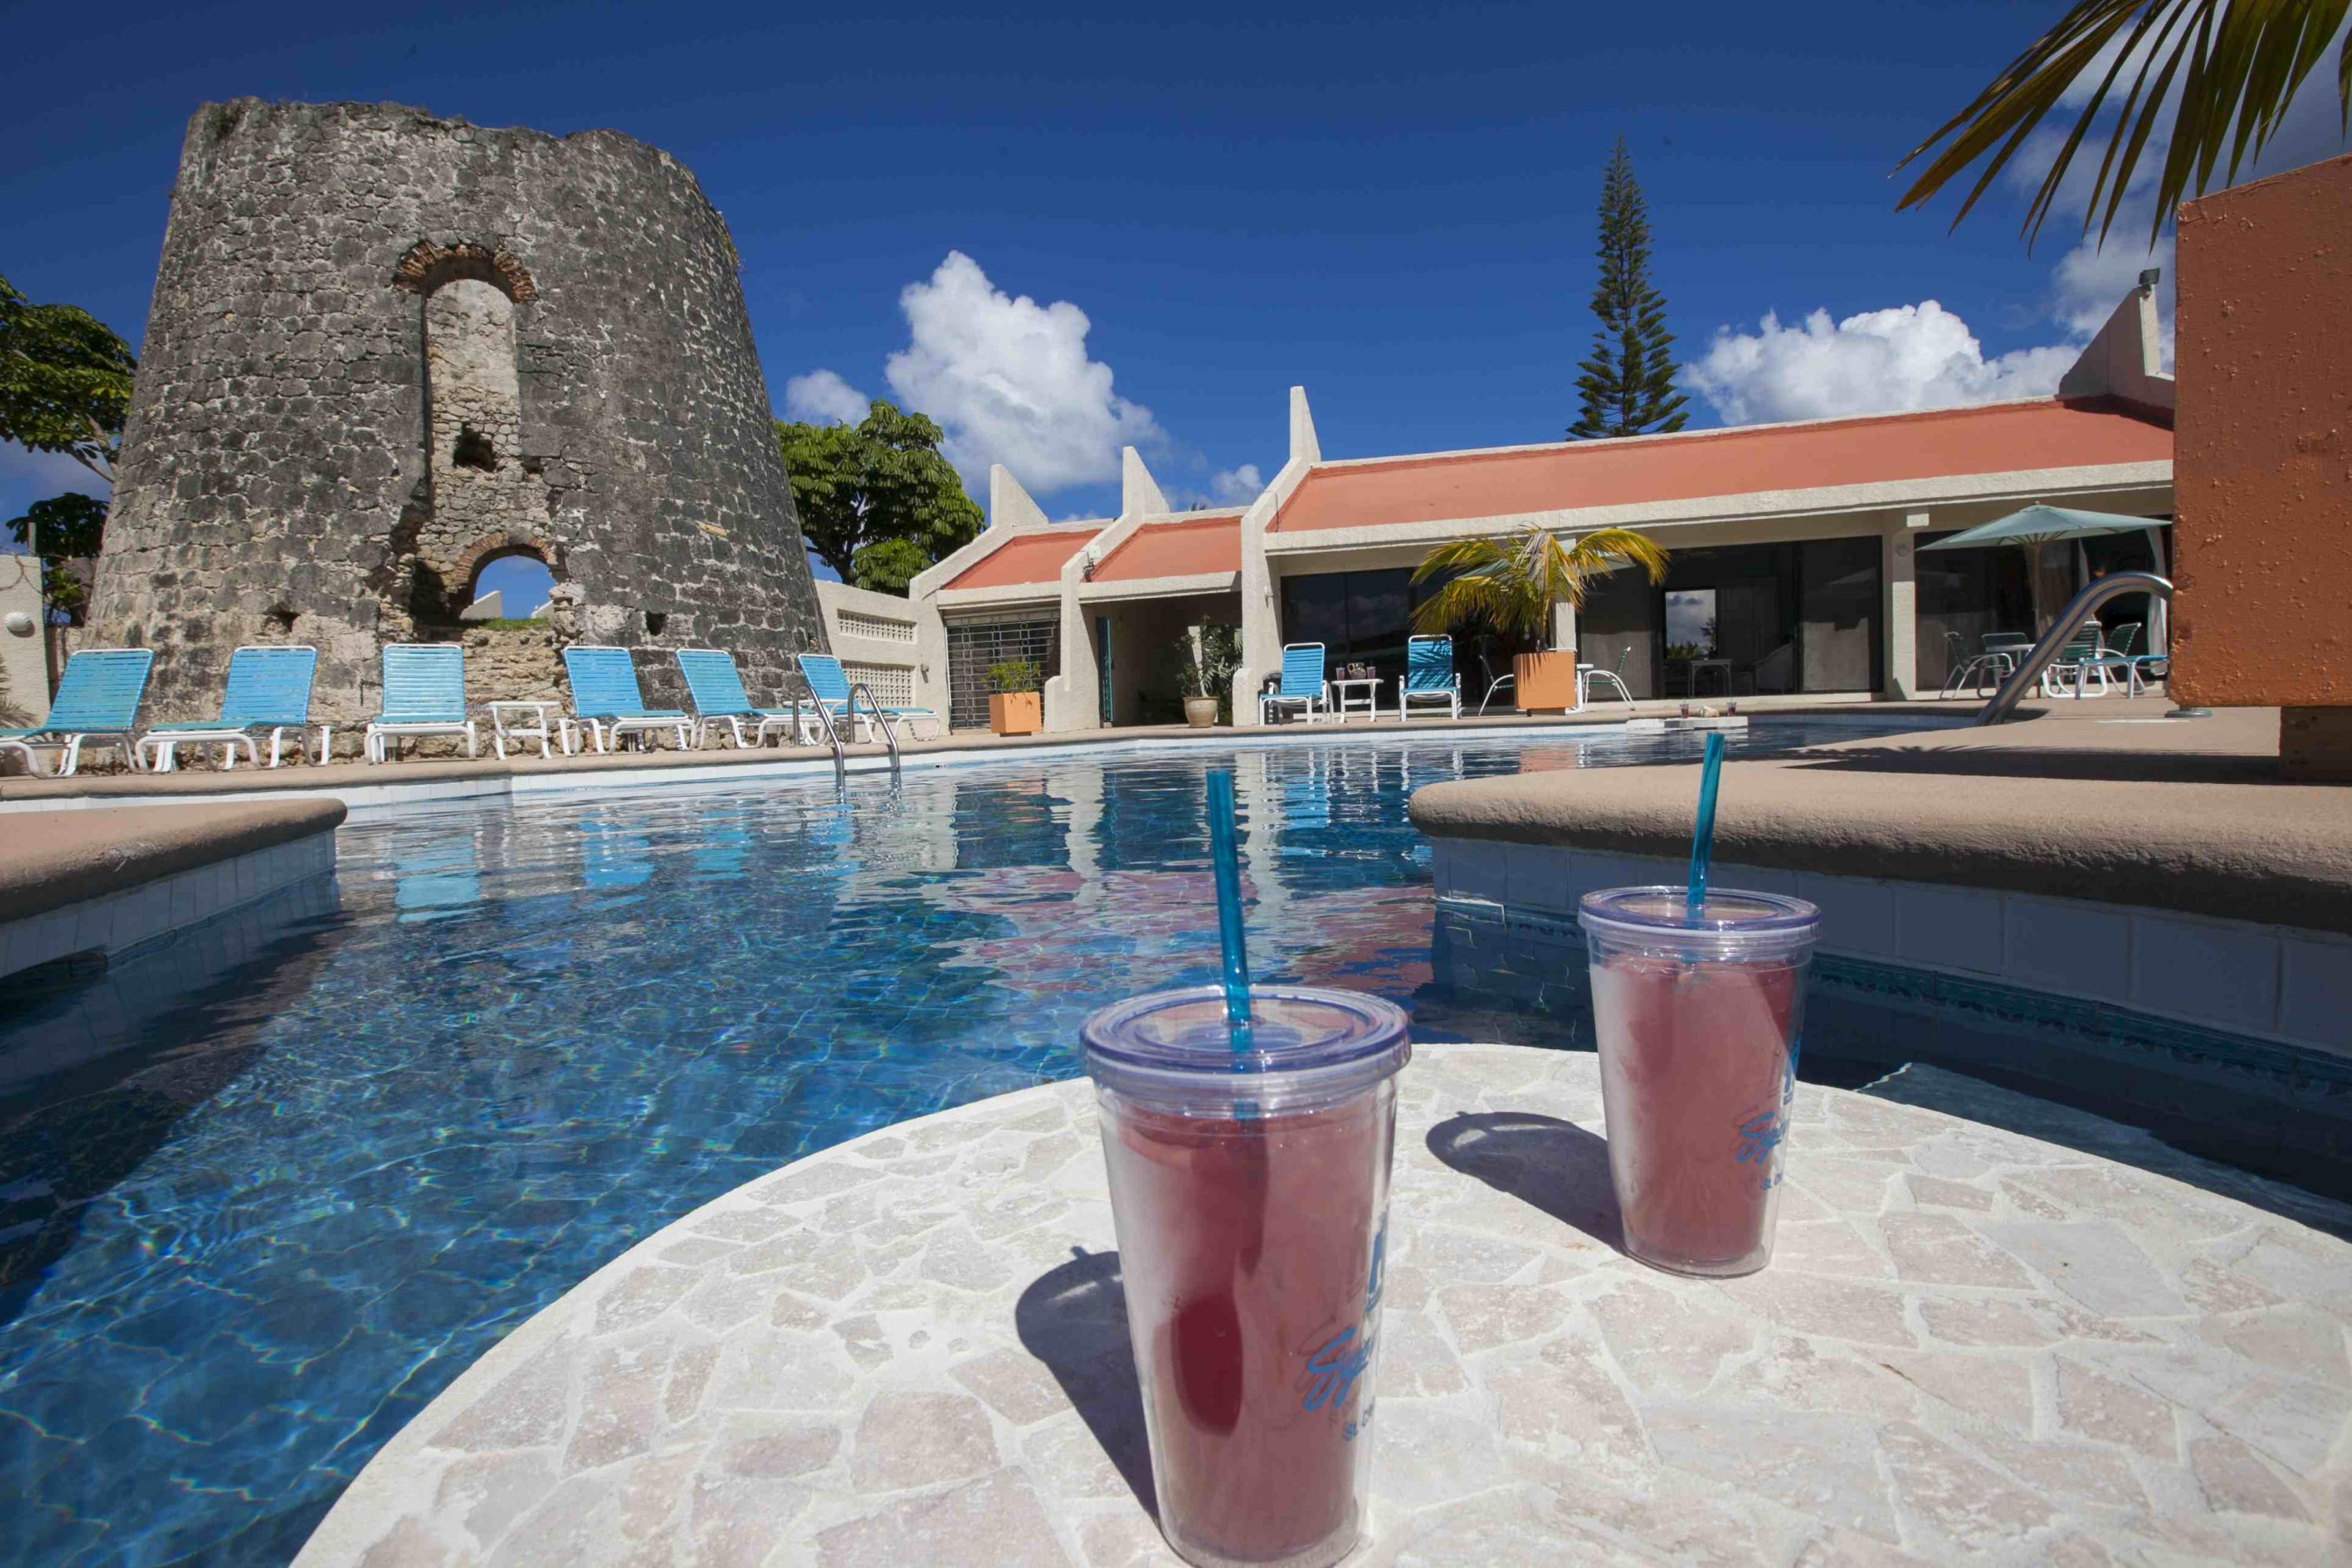 Pool - drinks and Sugar Mill